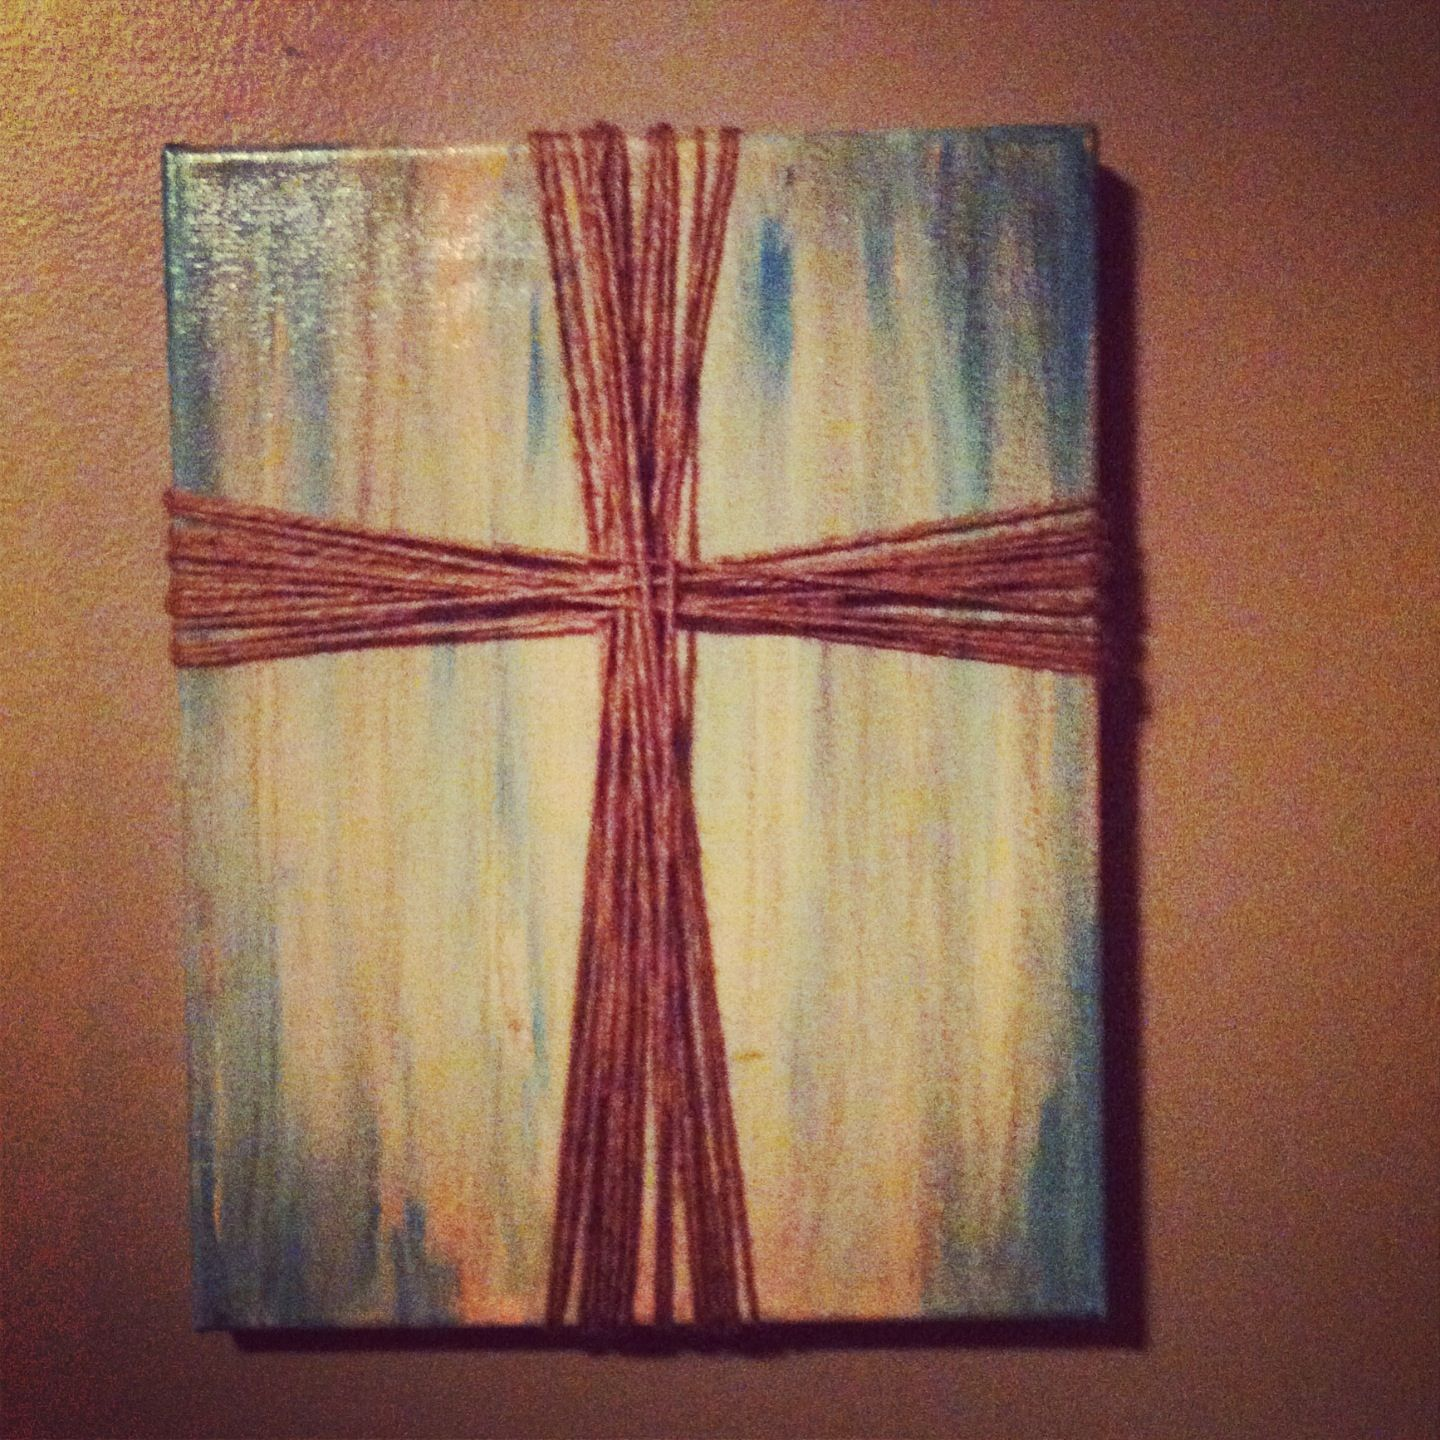 Art Painted On Wood Canvas Paint Wood Stain And Jute Pins I 39ve Actually